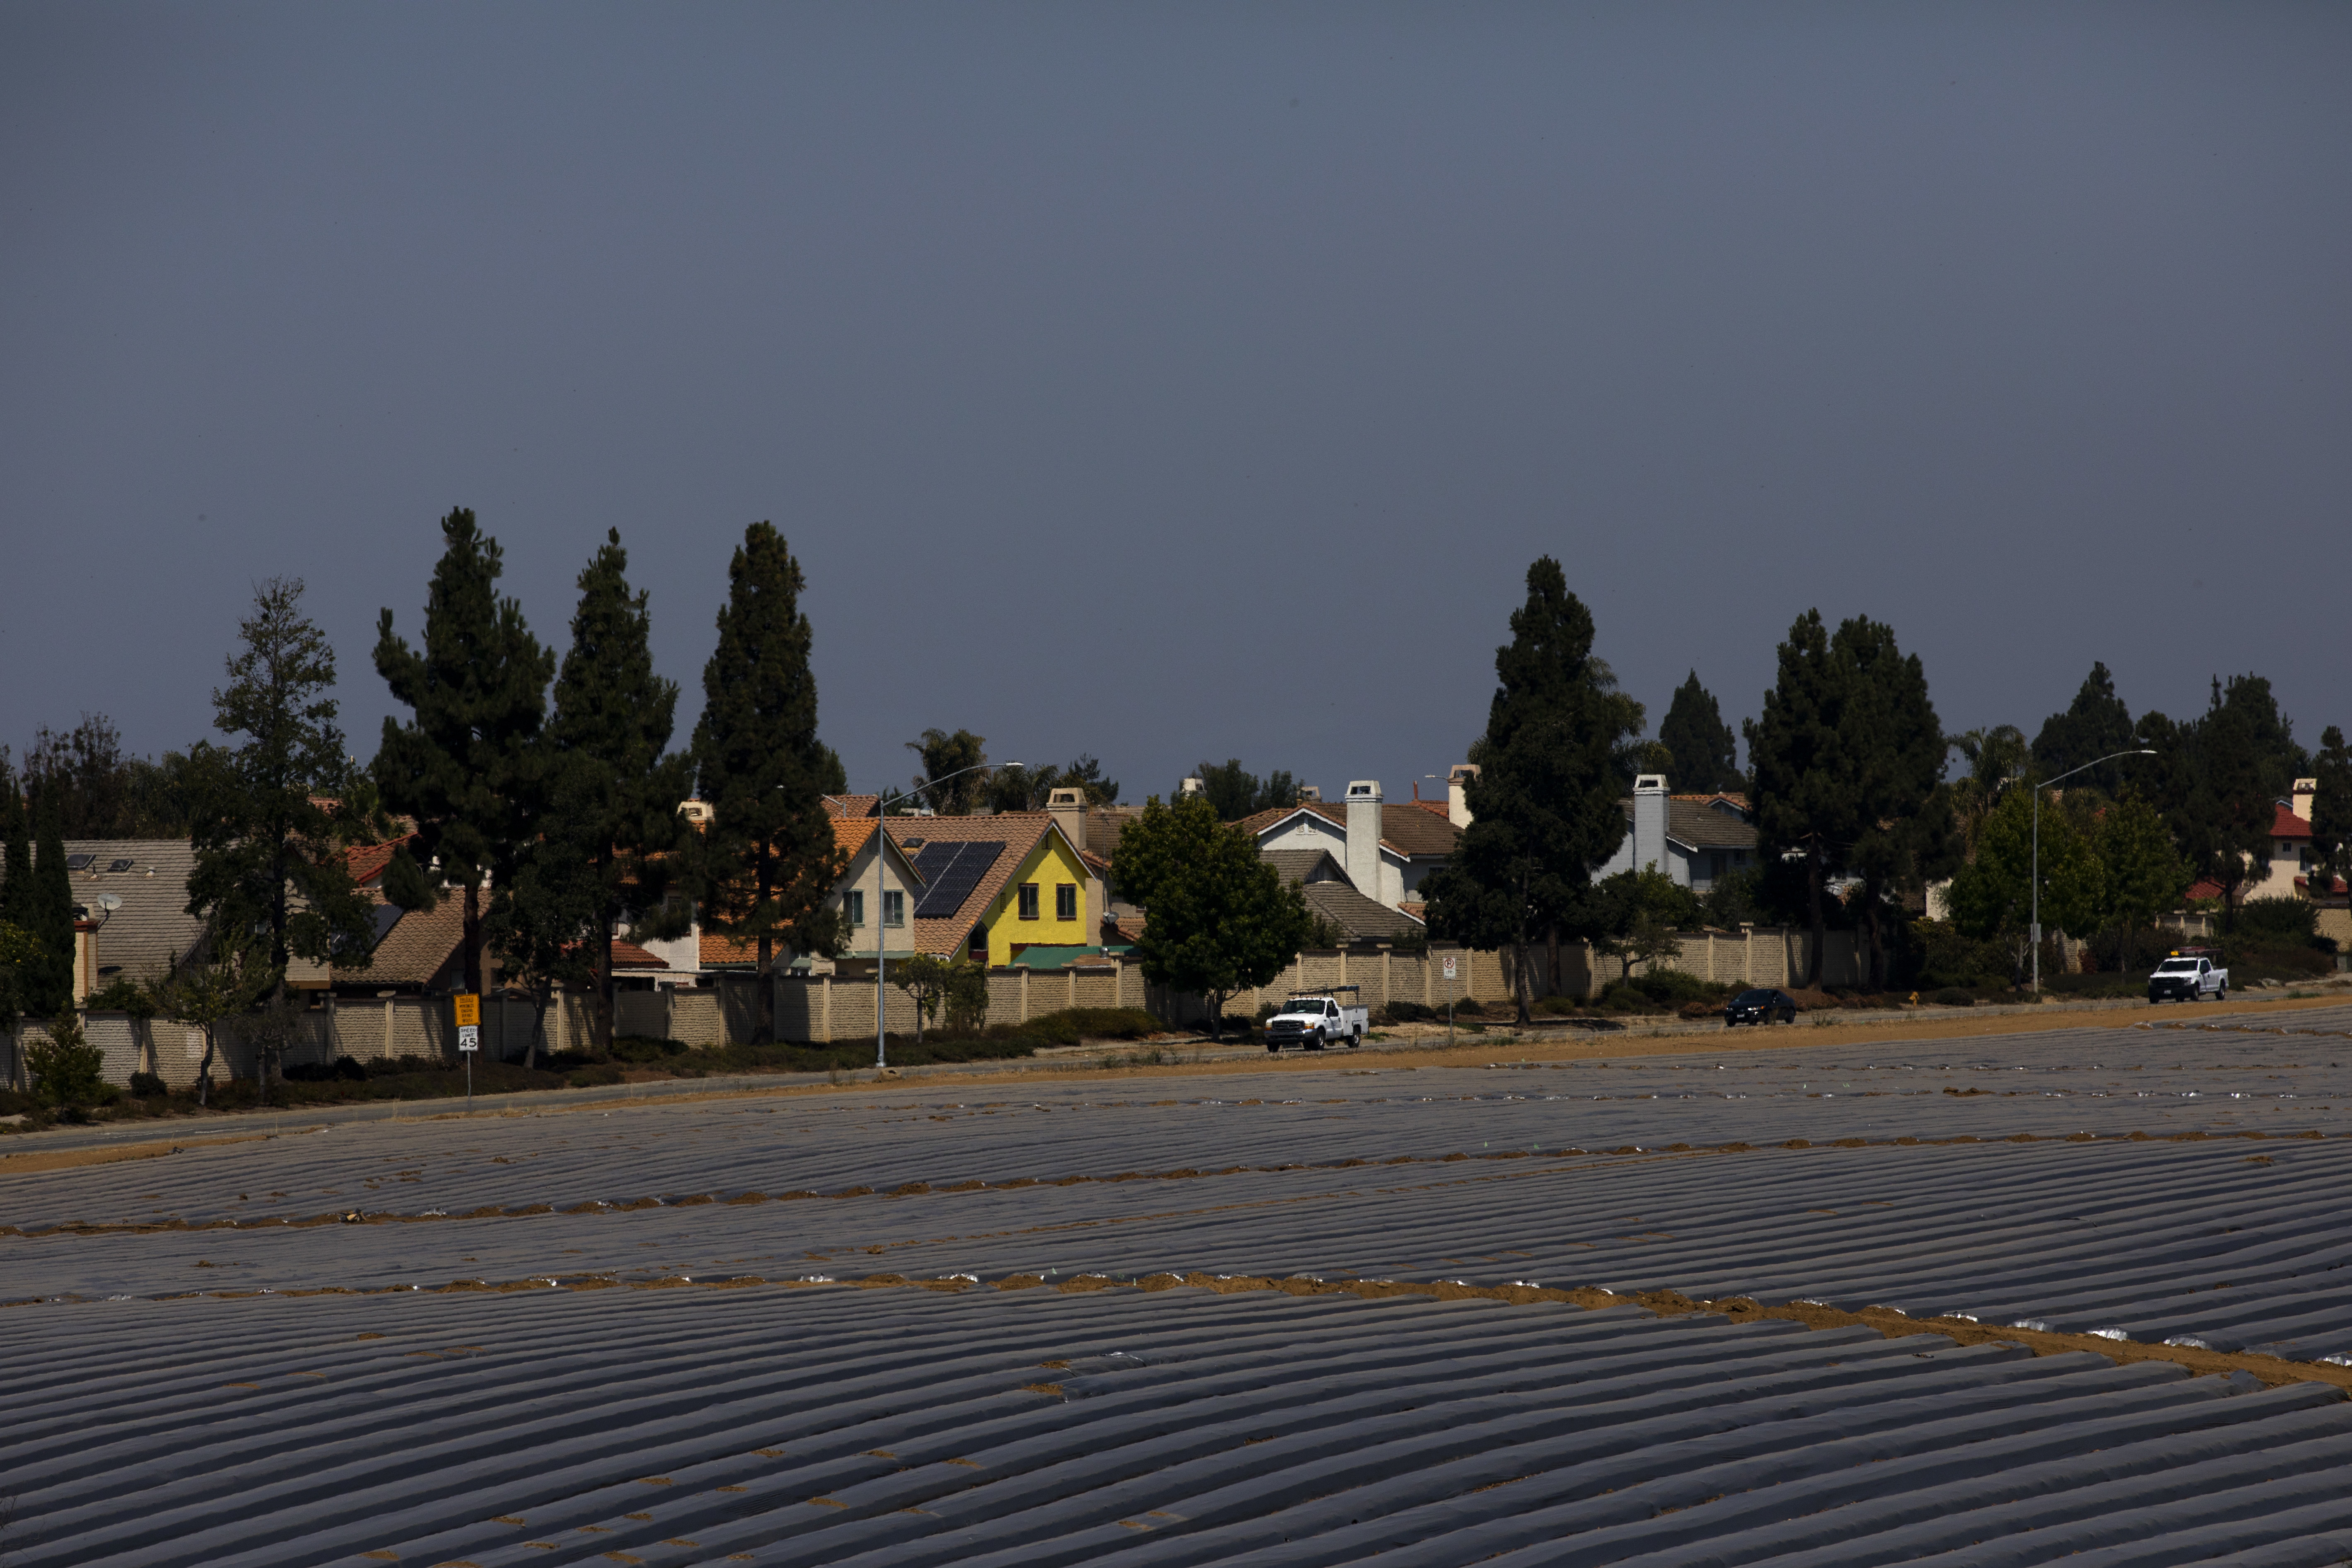 In this Tuesday, Sept. 4, 2018, photo, pickup trucks run between farmlands and residential areas in Salinas, Calif. Salinas is an affordable location compared to Silicon Valley, where median home prices are about $1 million, but with a less-wealthy population and a median home price that has ballooned to about $550,000, it's one of the least affordable places in America. (AP Photo/Jae C. Hong)